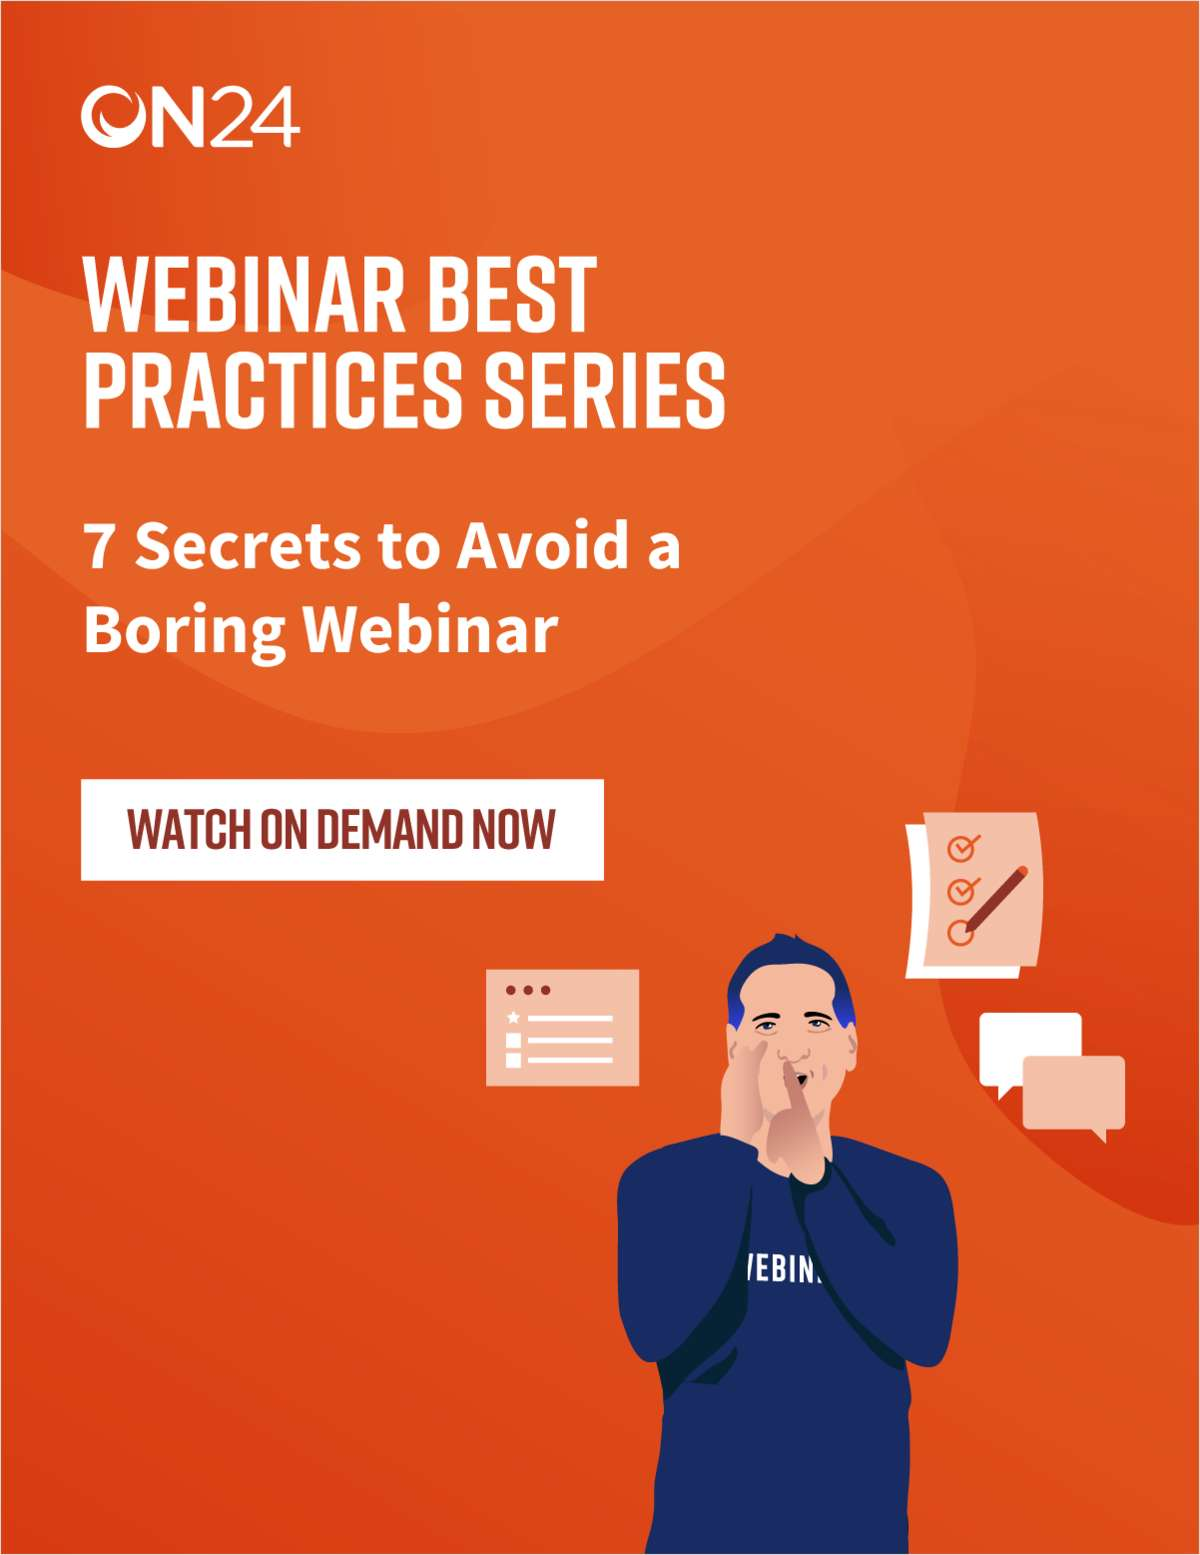 Webinar Best Practices Series: 7 Secrets to Avoid a Boring Webinar